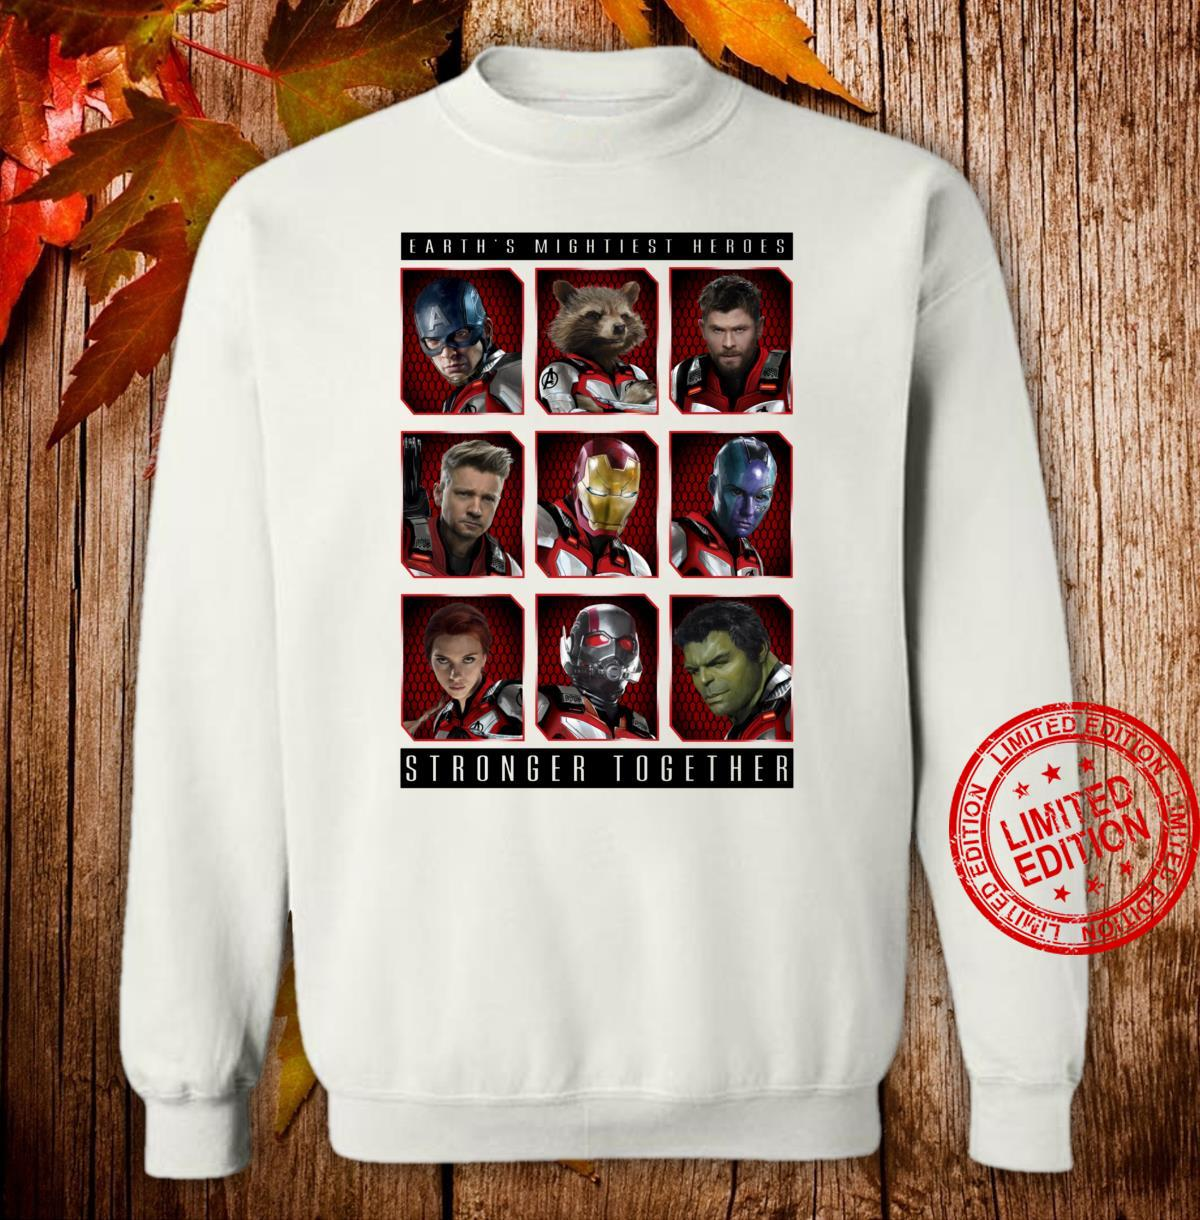 Marvel Avengers Earth's Mightiest Heroes Stronger Together Shirt sweater